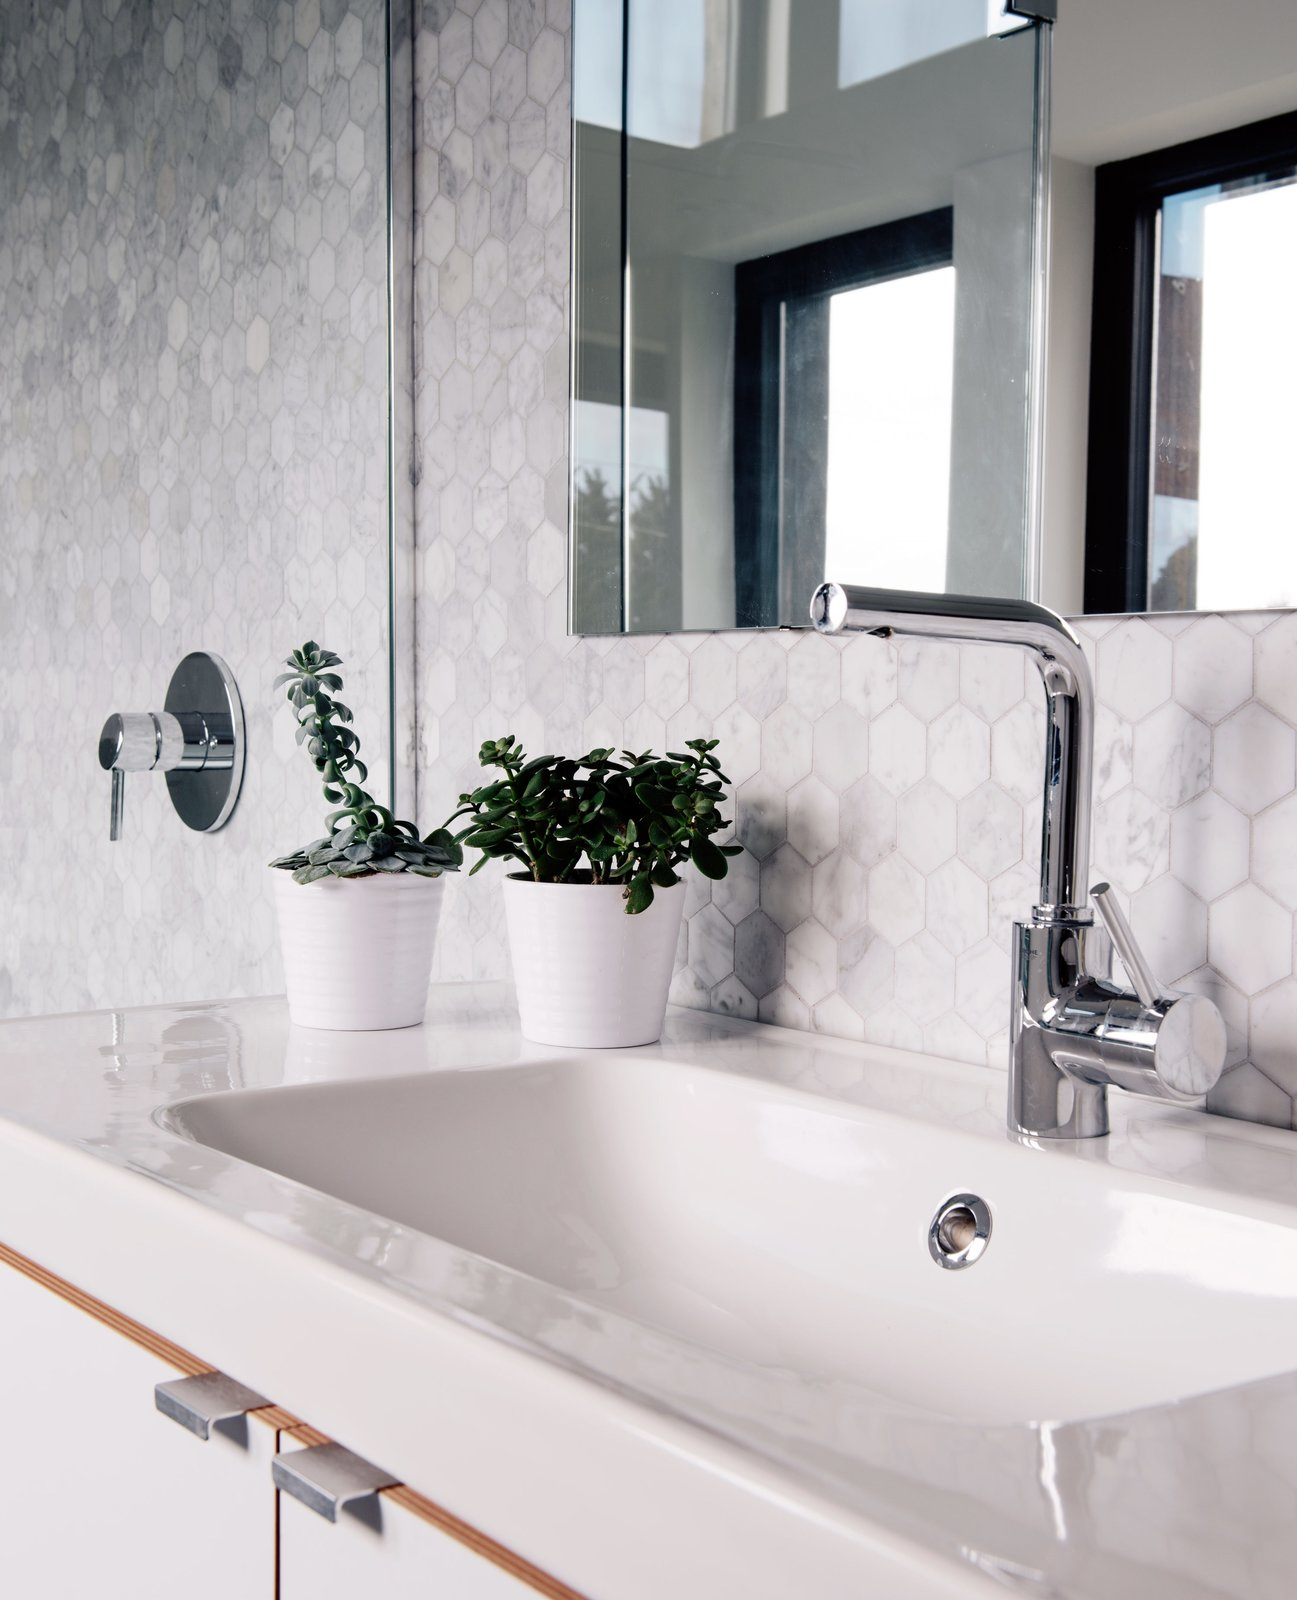 Passive House bathroom white drop-in sink and stainless steel silver faucet.